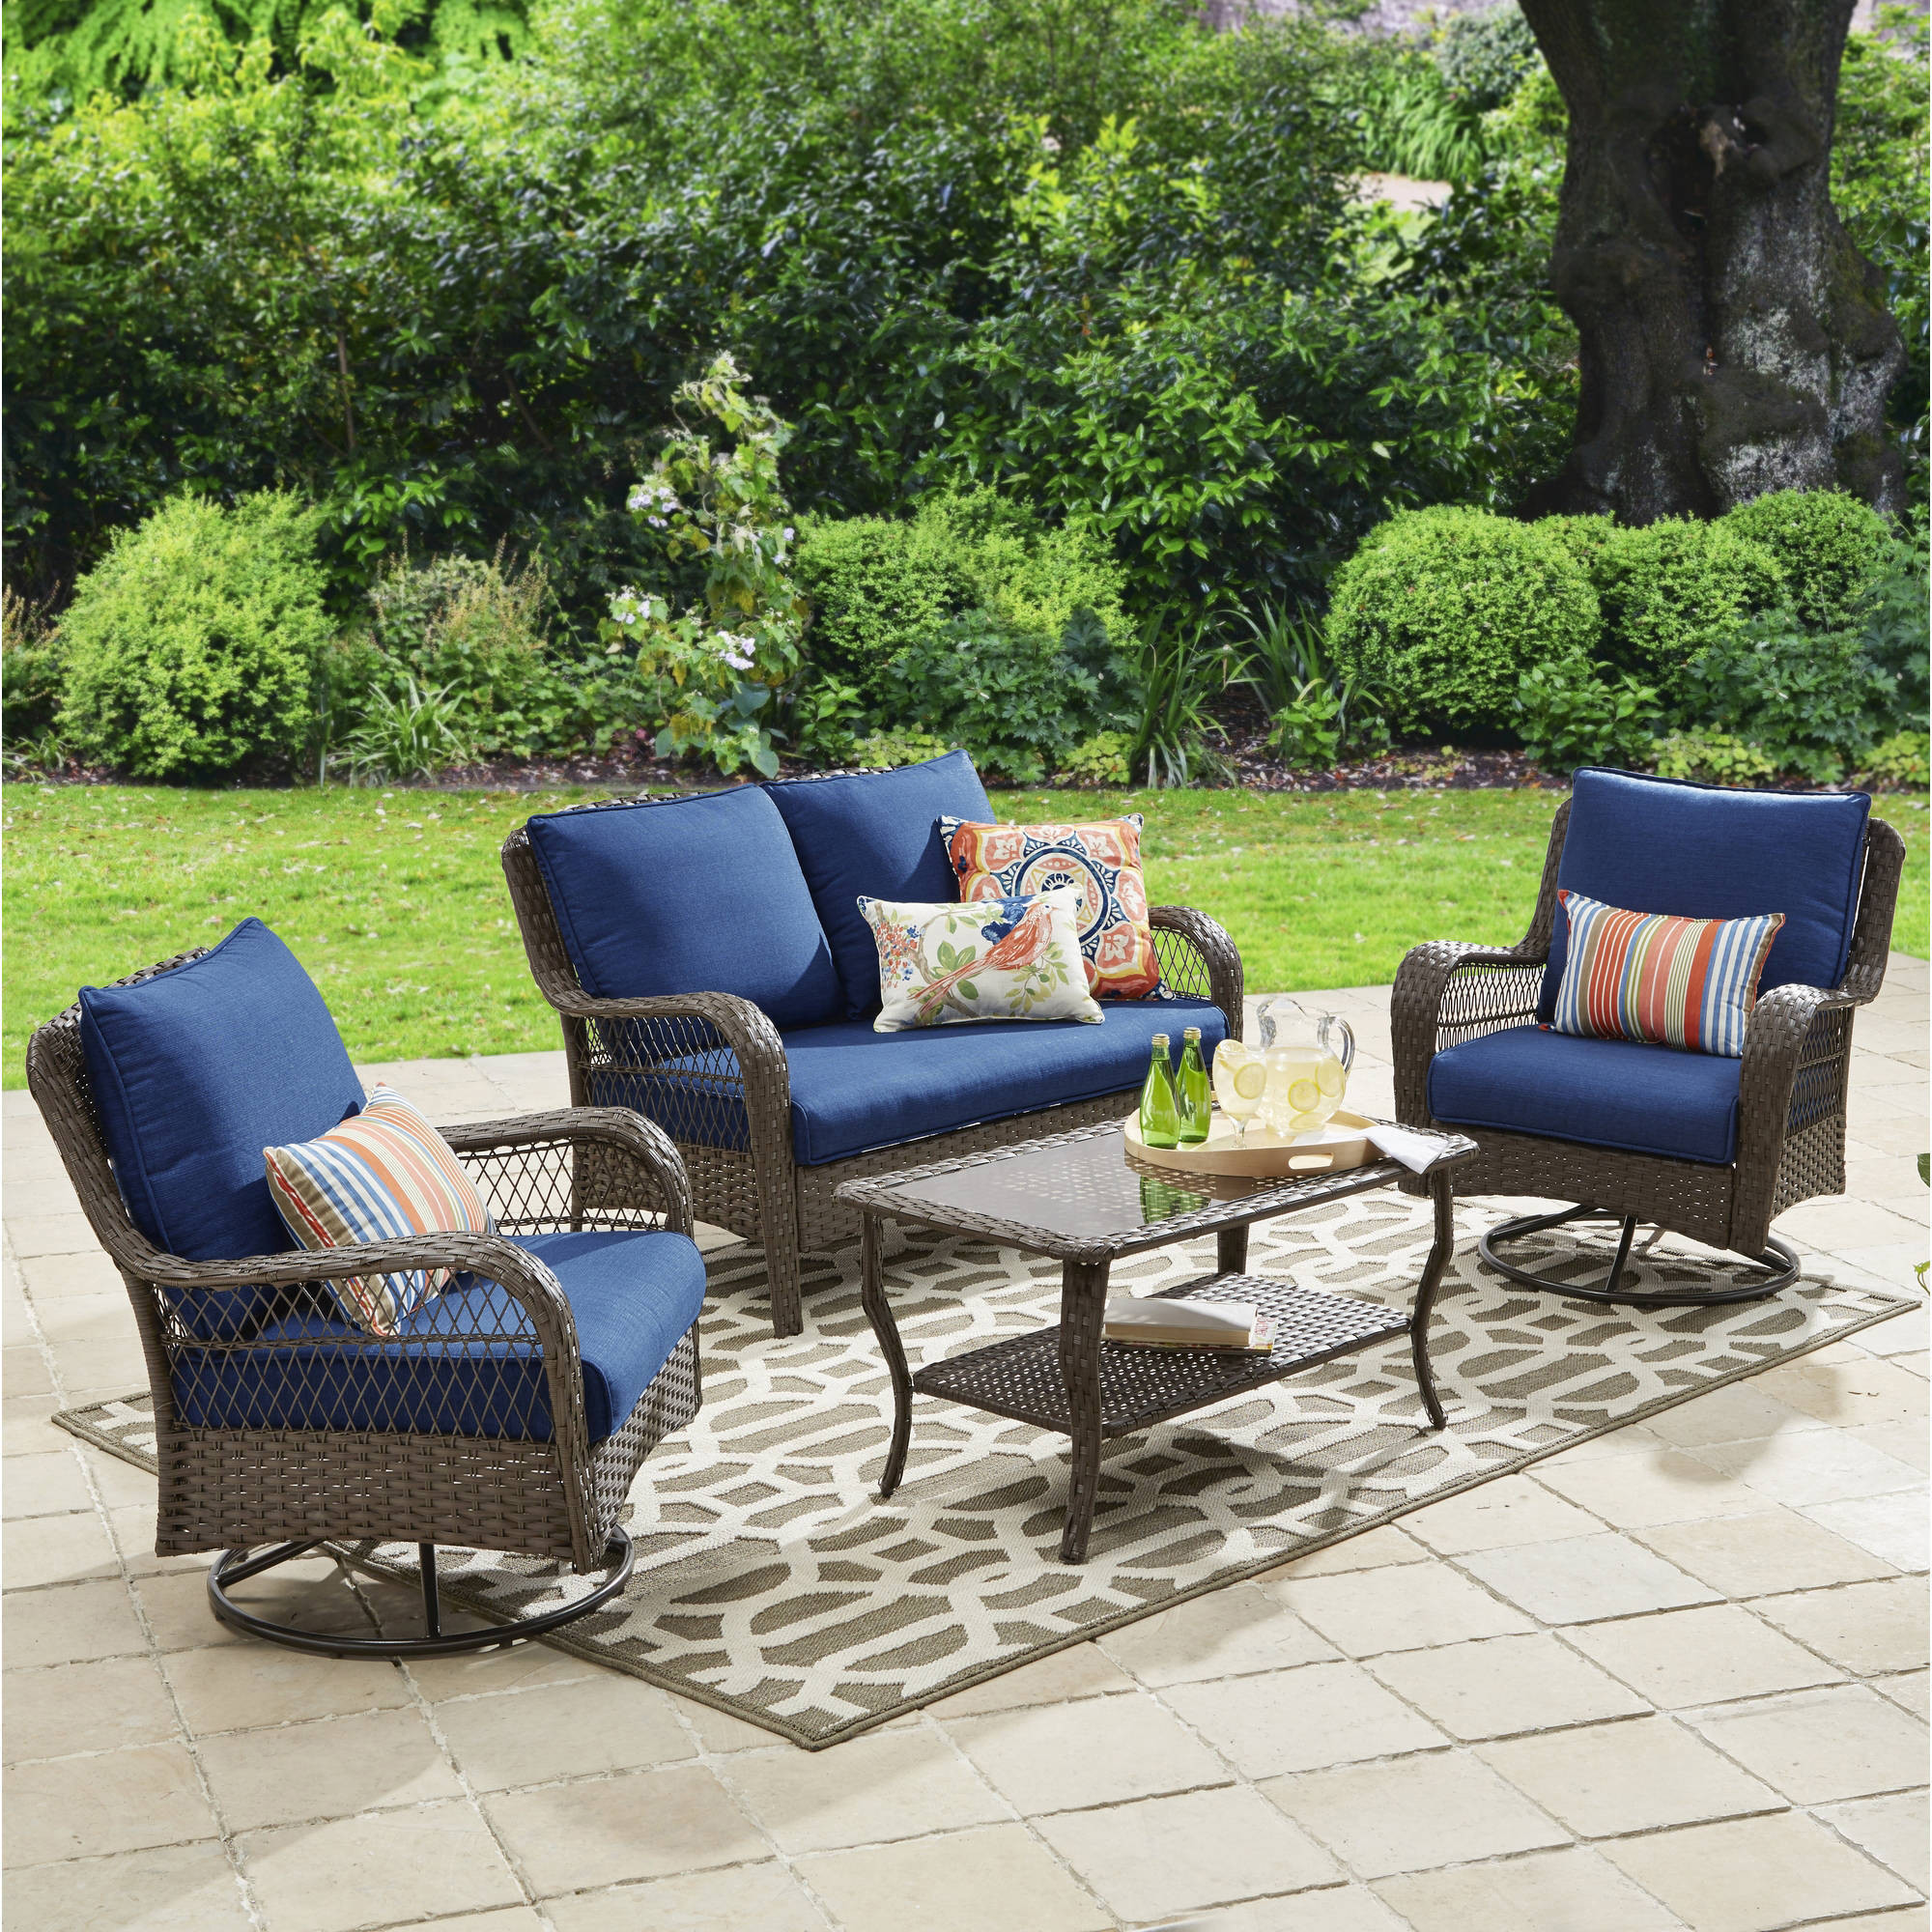 Best ideas about Walmart Patio Furniture . Save or Pin Better Homes and Gardens Patio Furniture Walmart Now.